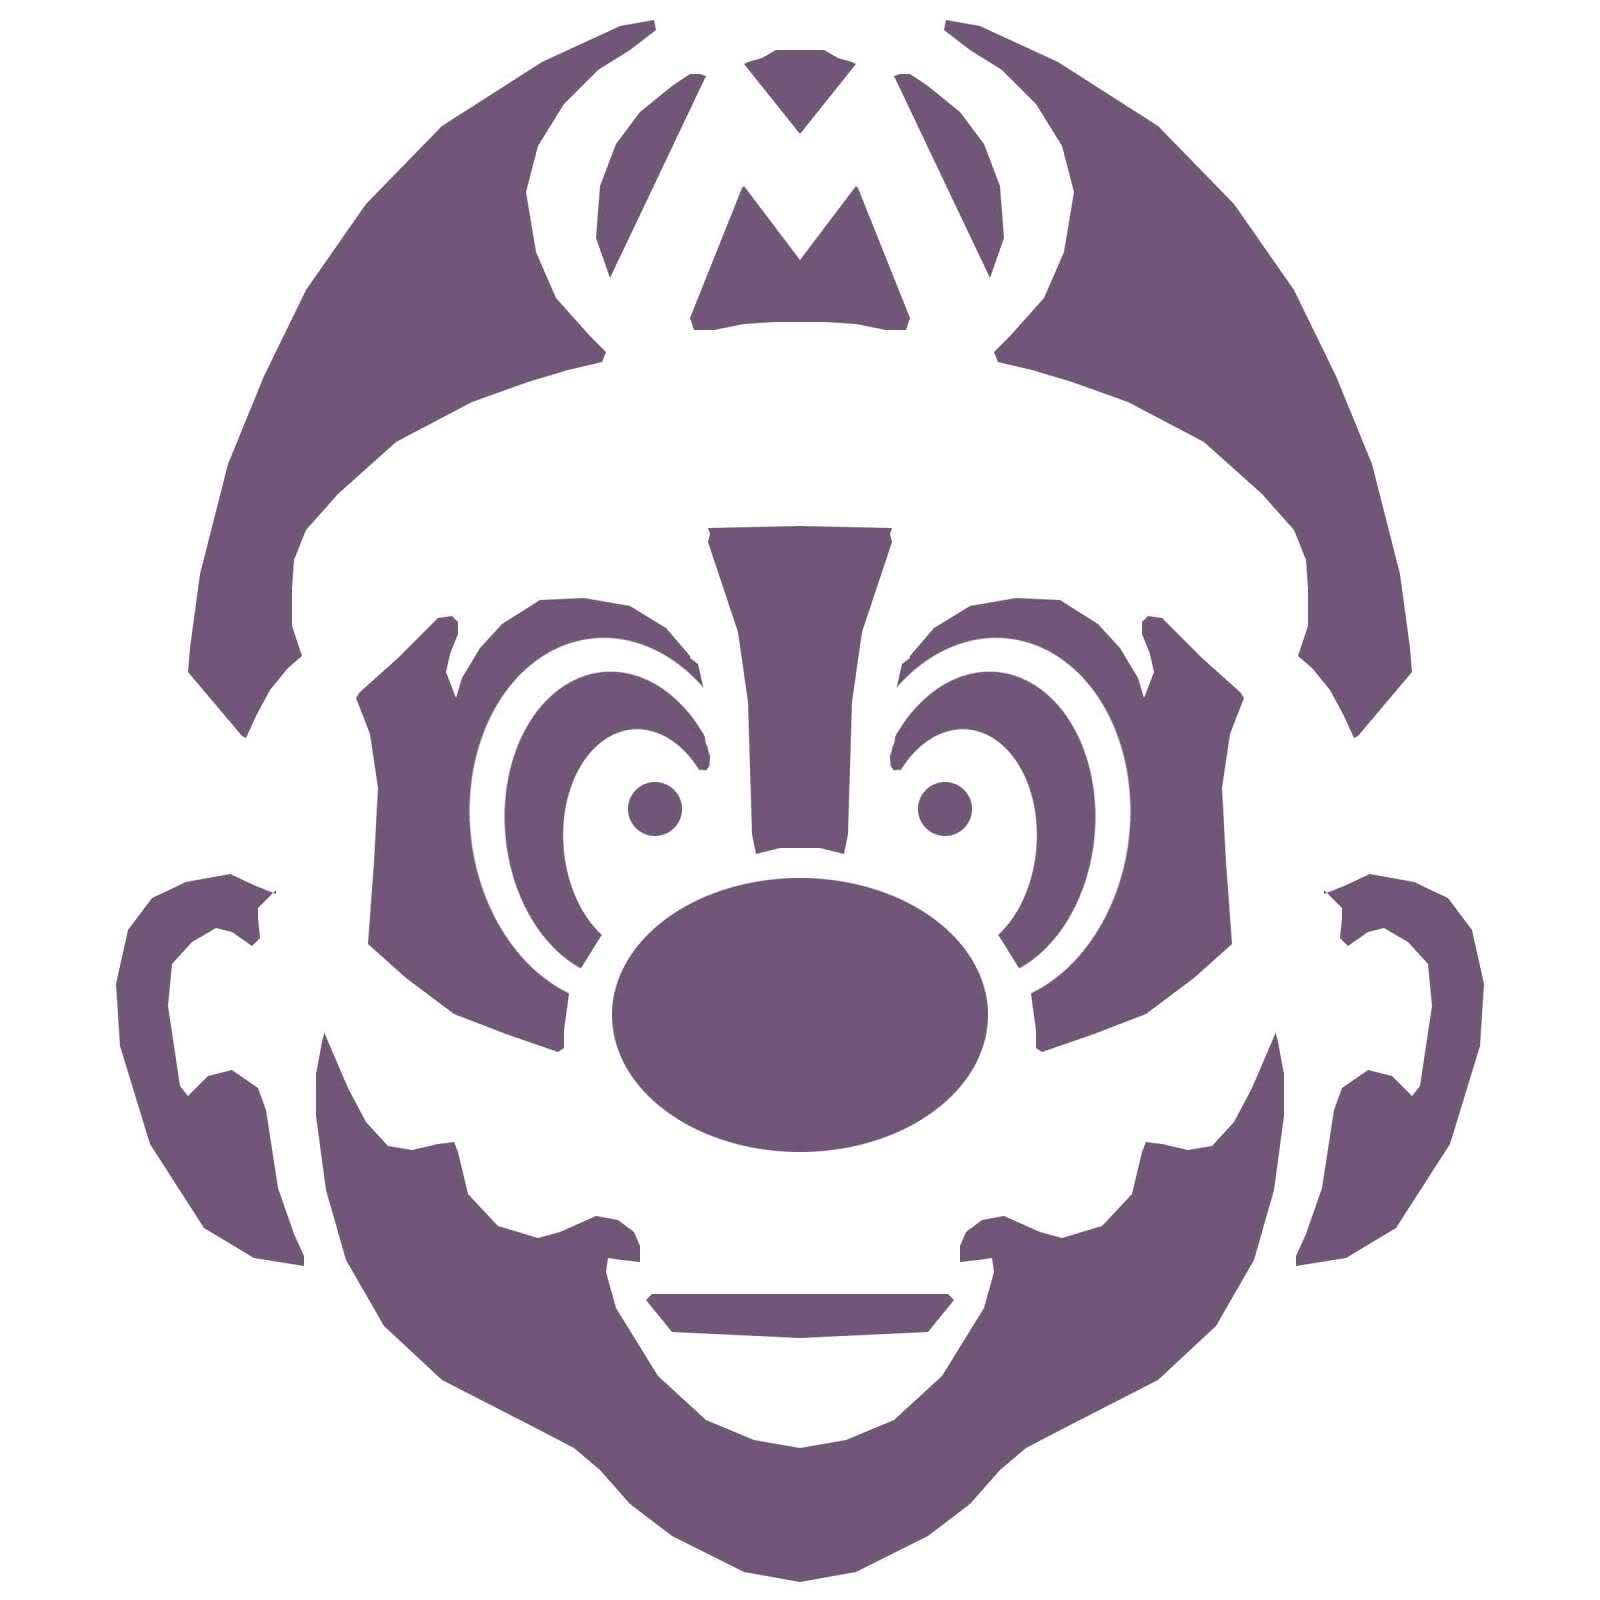 download the stencil over at mario mayhem